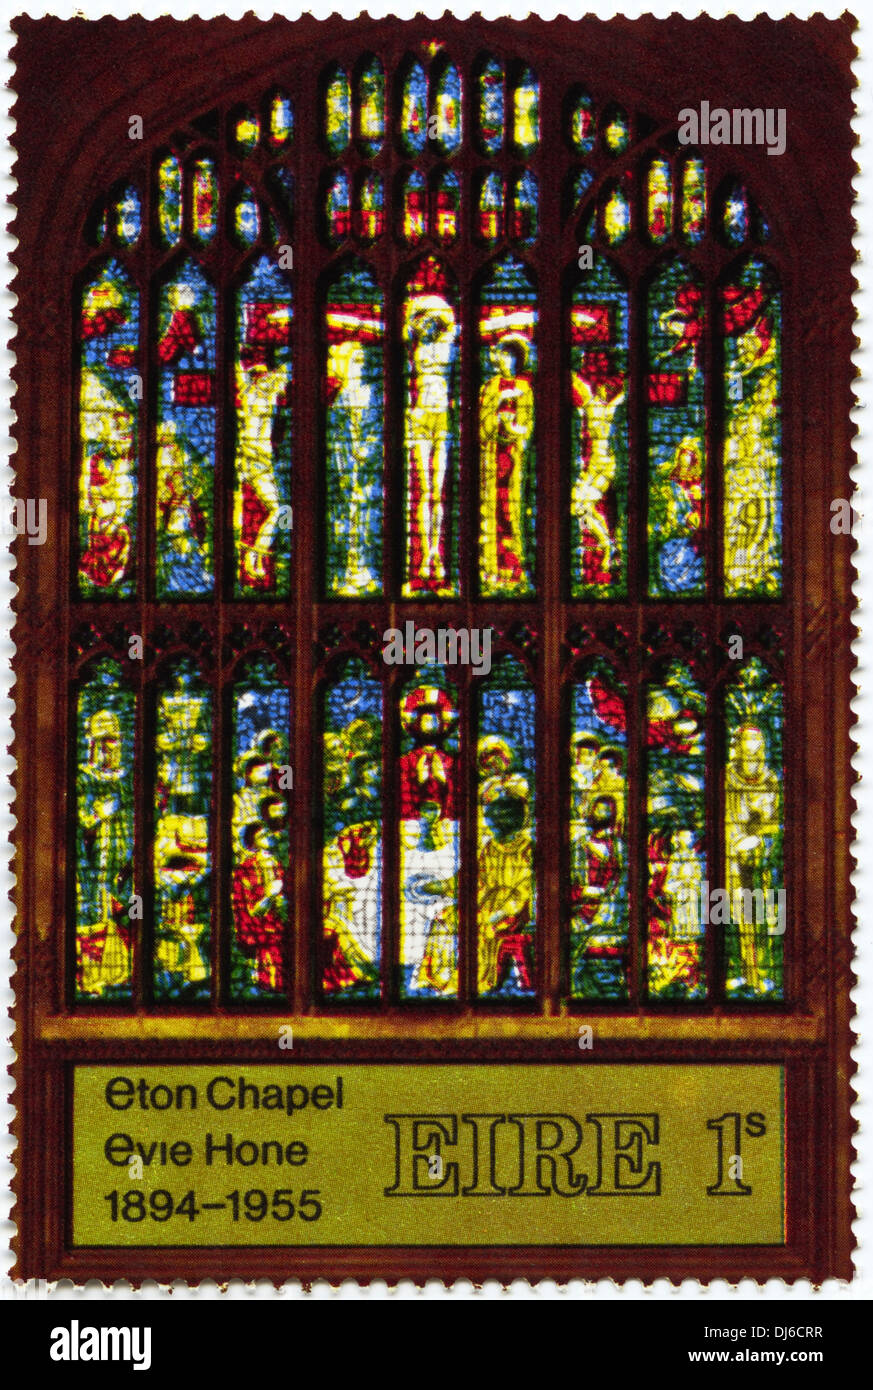 postage stamp Eire 1s featuring Eton Chapel stained glass window 1894 - 1955 dated 1969 - Stock Image